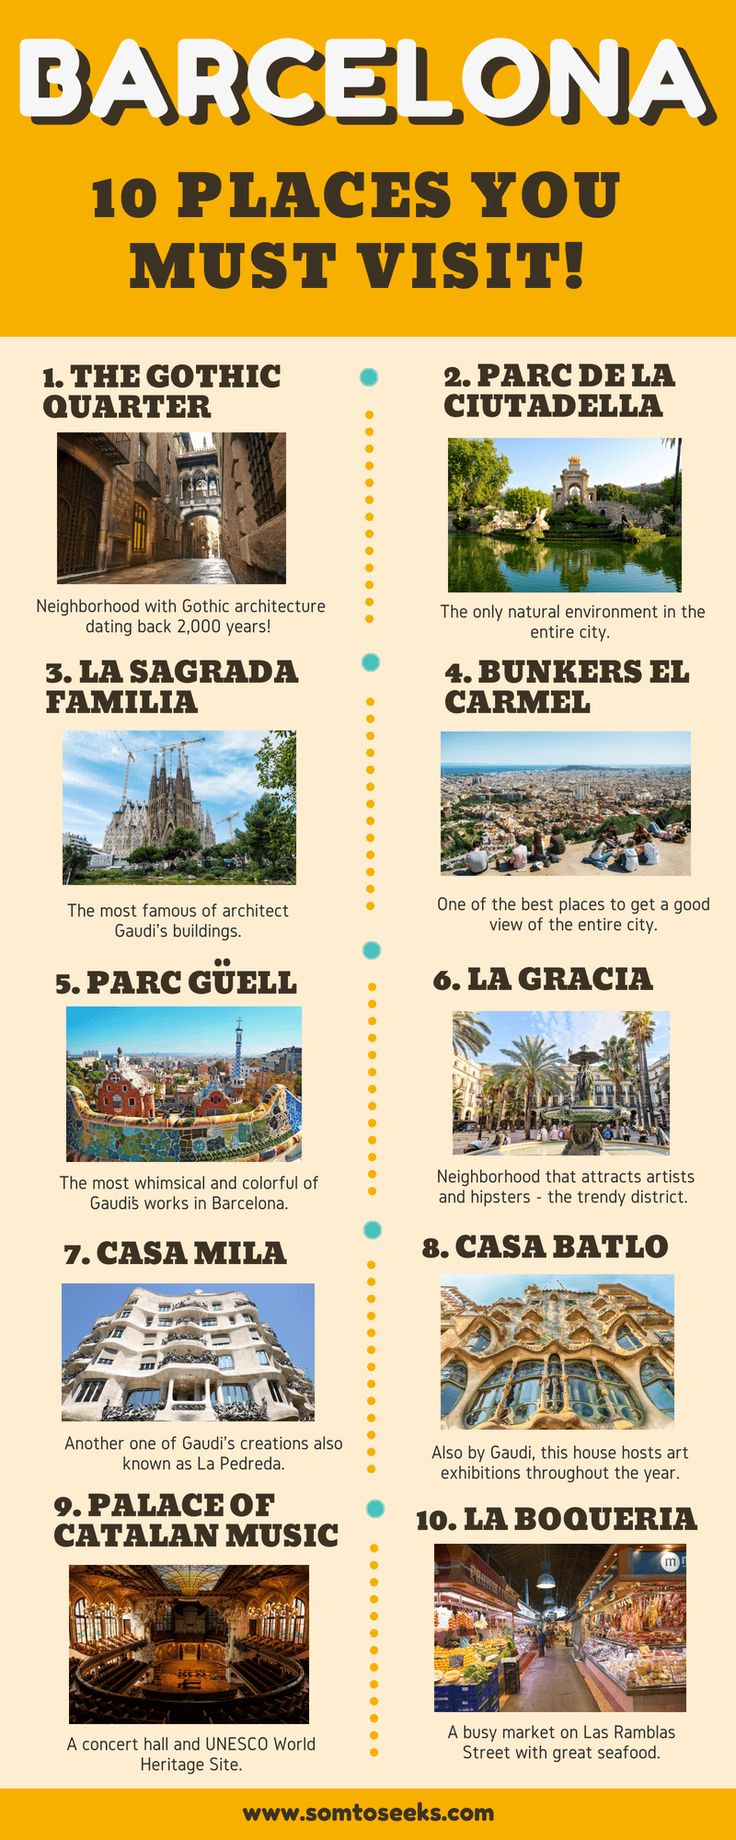 A Self-Guided Walking Tour of Barcelona for First-Time Visitors